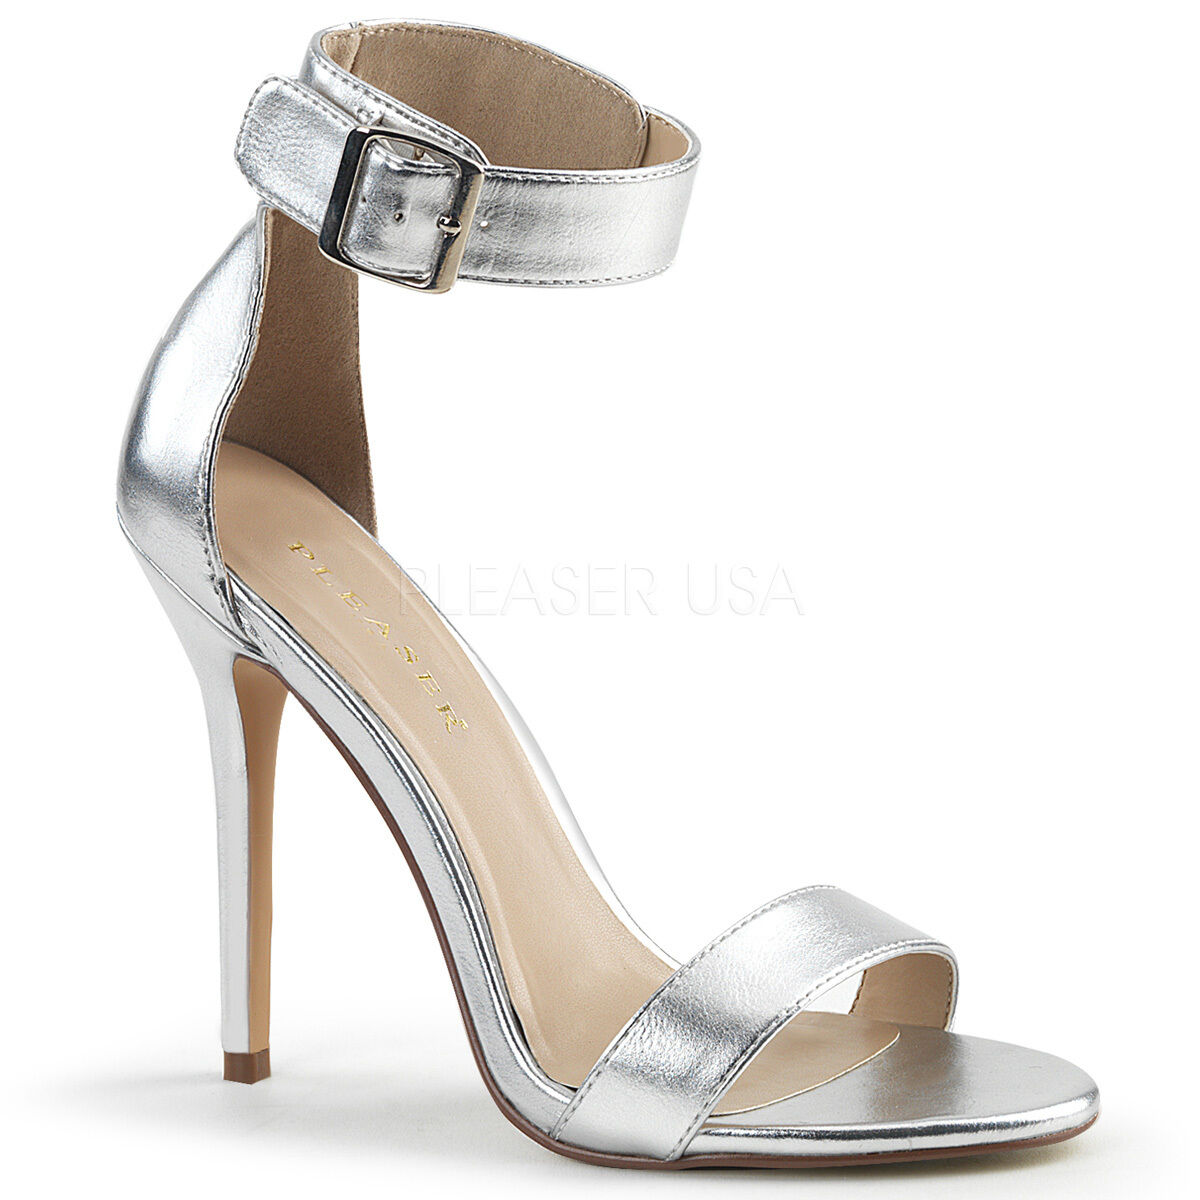 PLEASER AMU10 R Sexy 5 Heel Silver Prom Women Evening shoes Ankle Strap Sandals